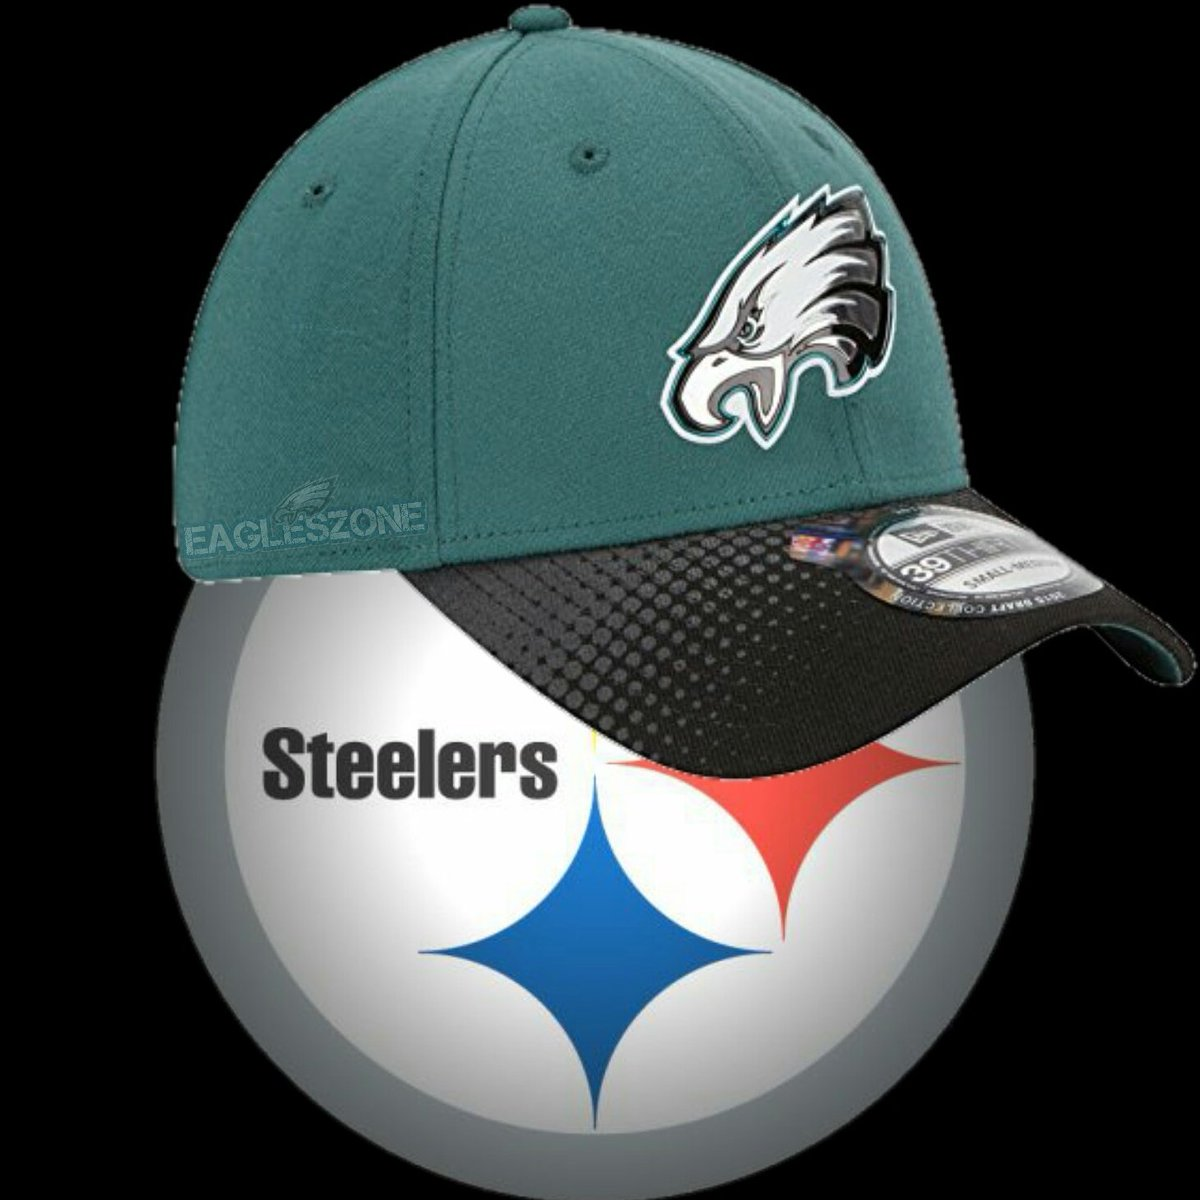 Steagles - Twitter Search